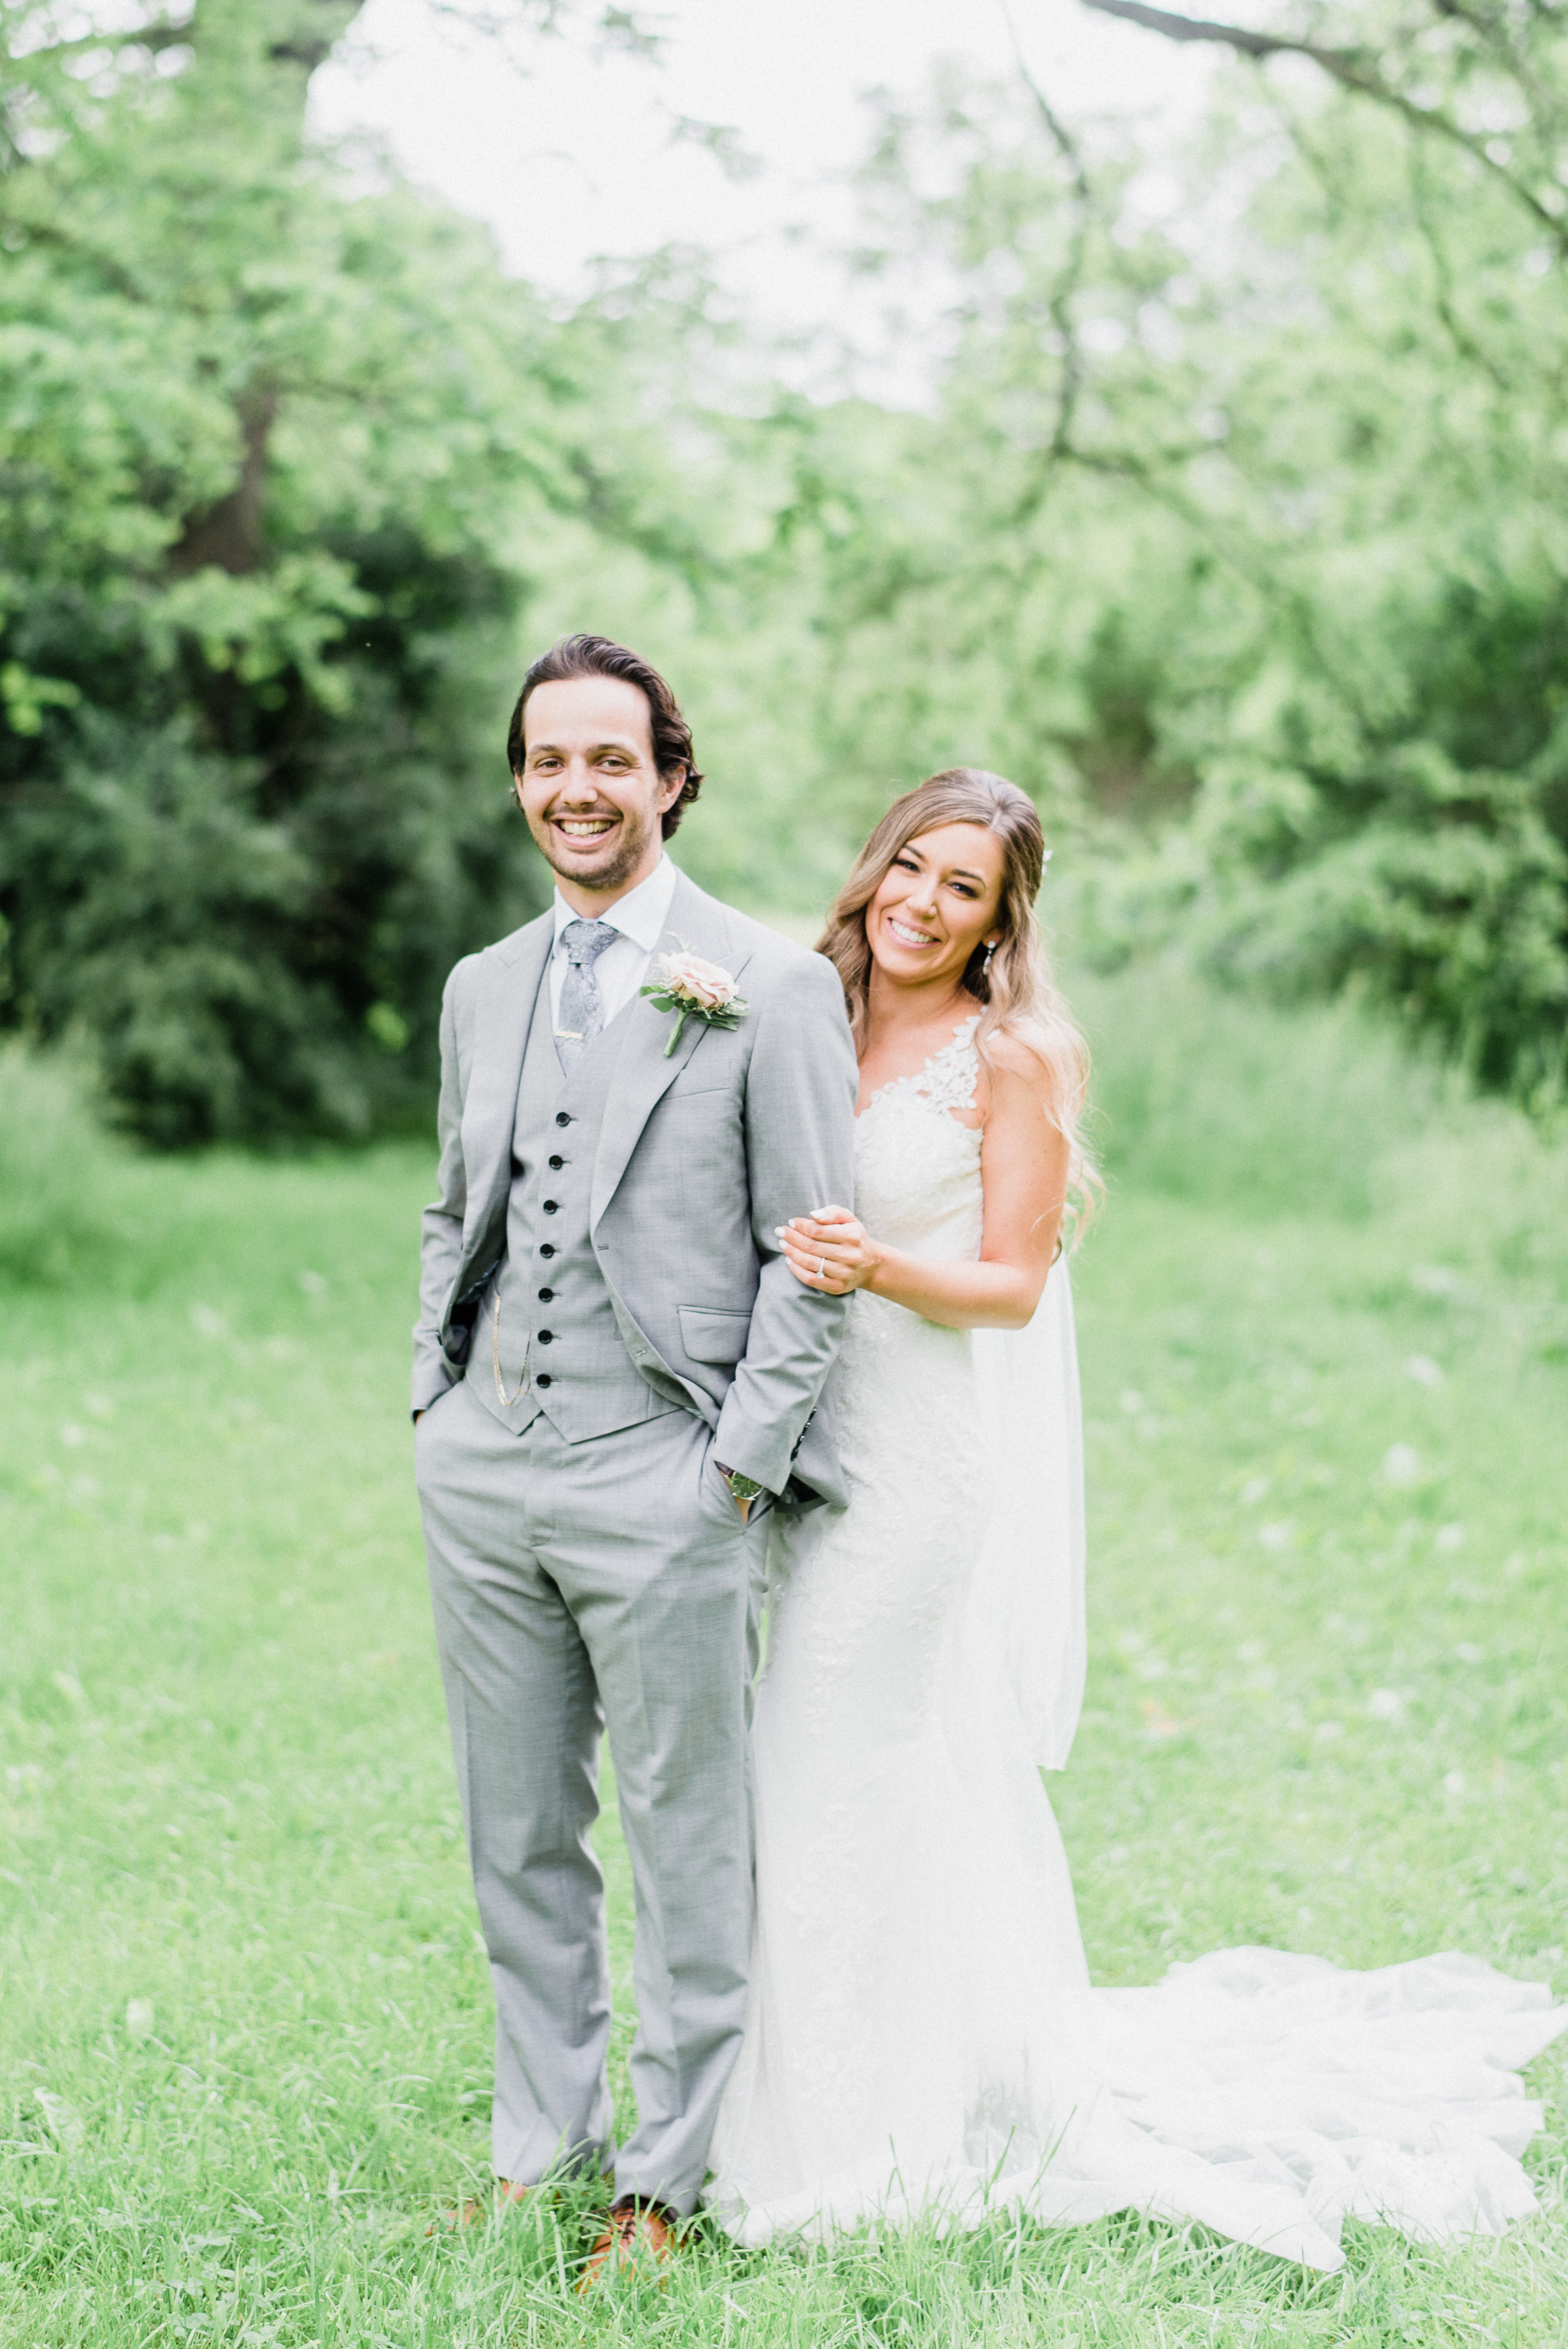 Burlington wedding by Jenn Kavanagh Photography